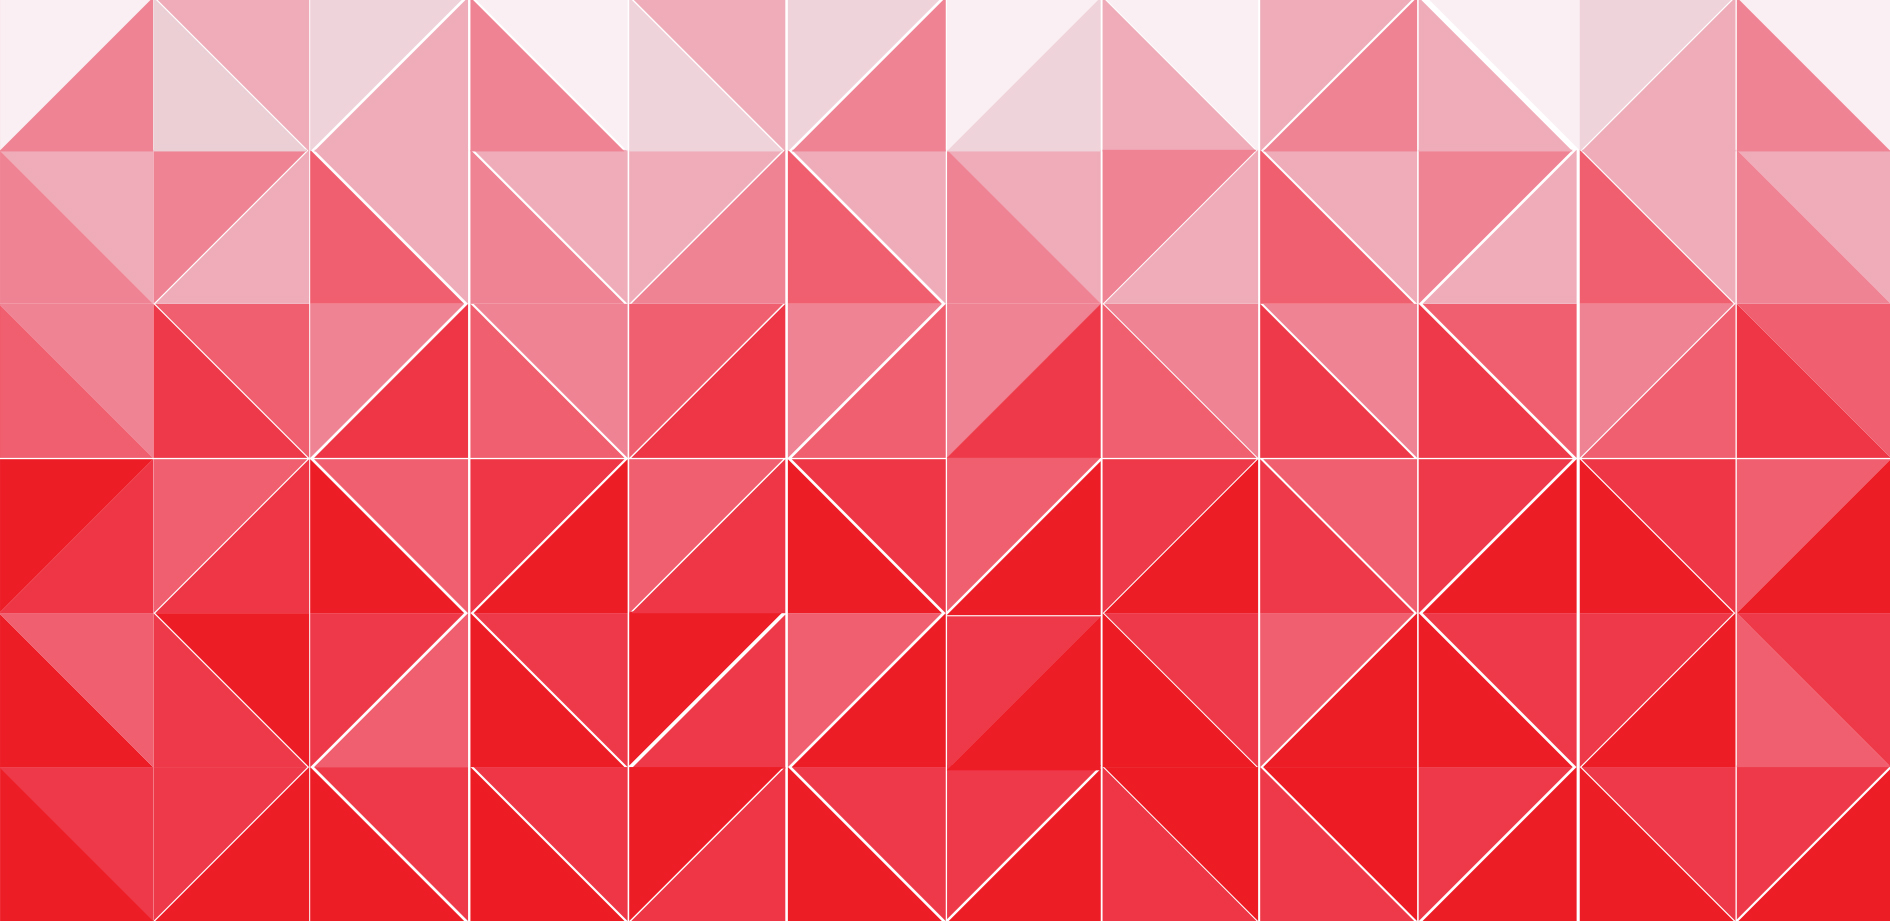 red-ombre-4.jpg#asset:16788